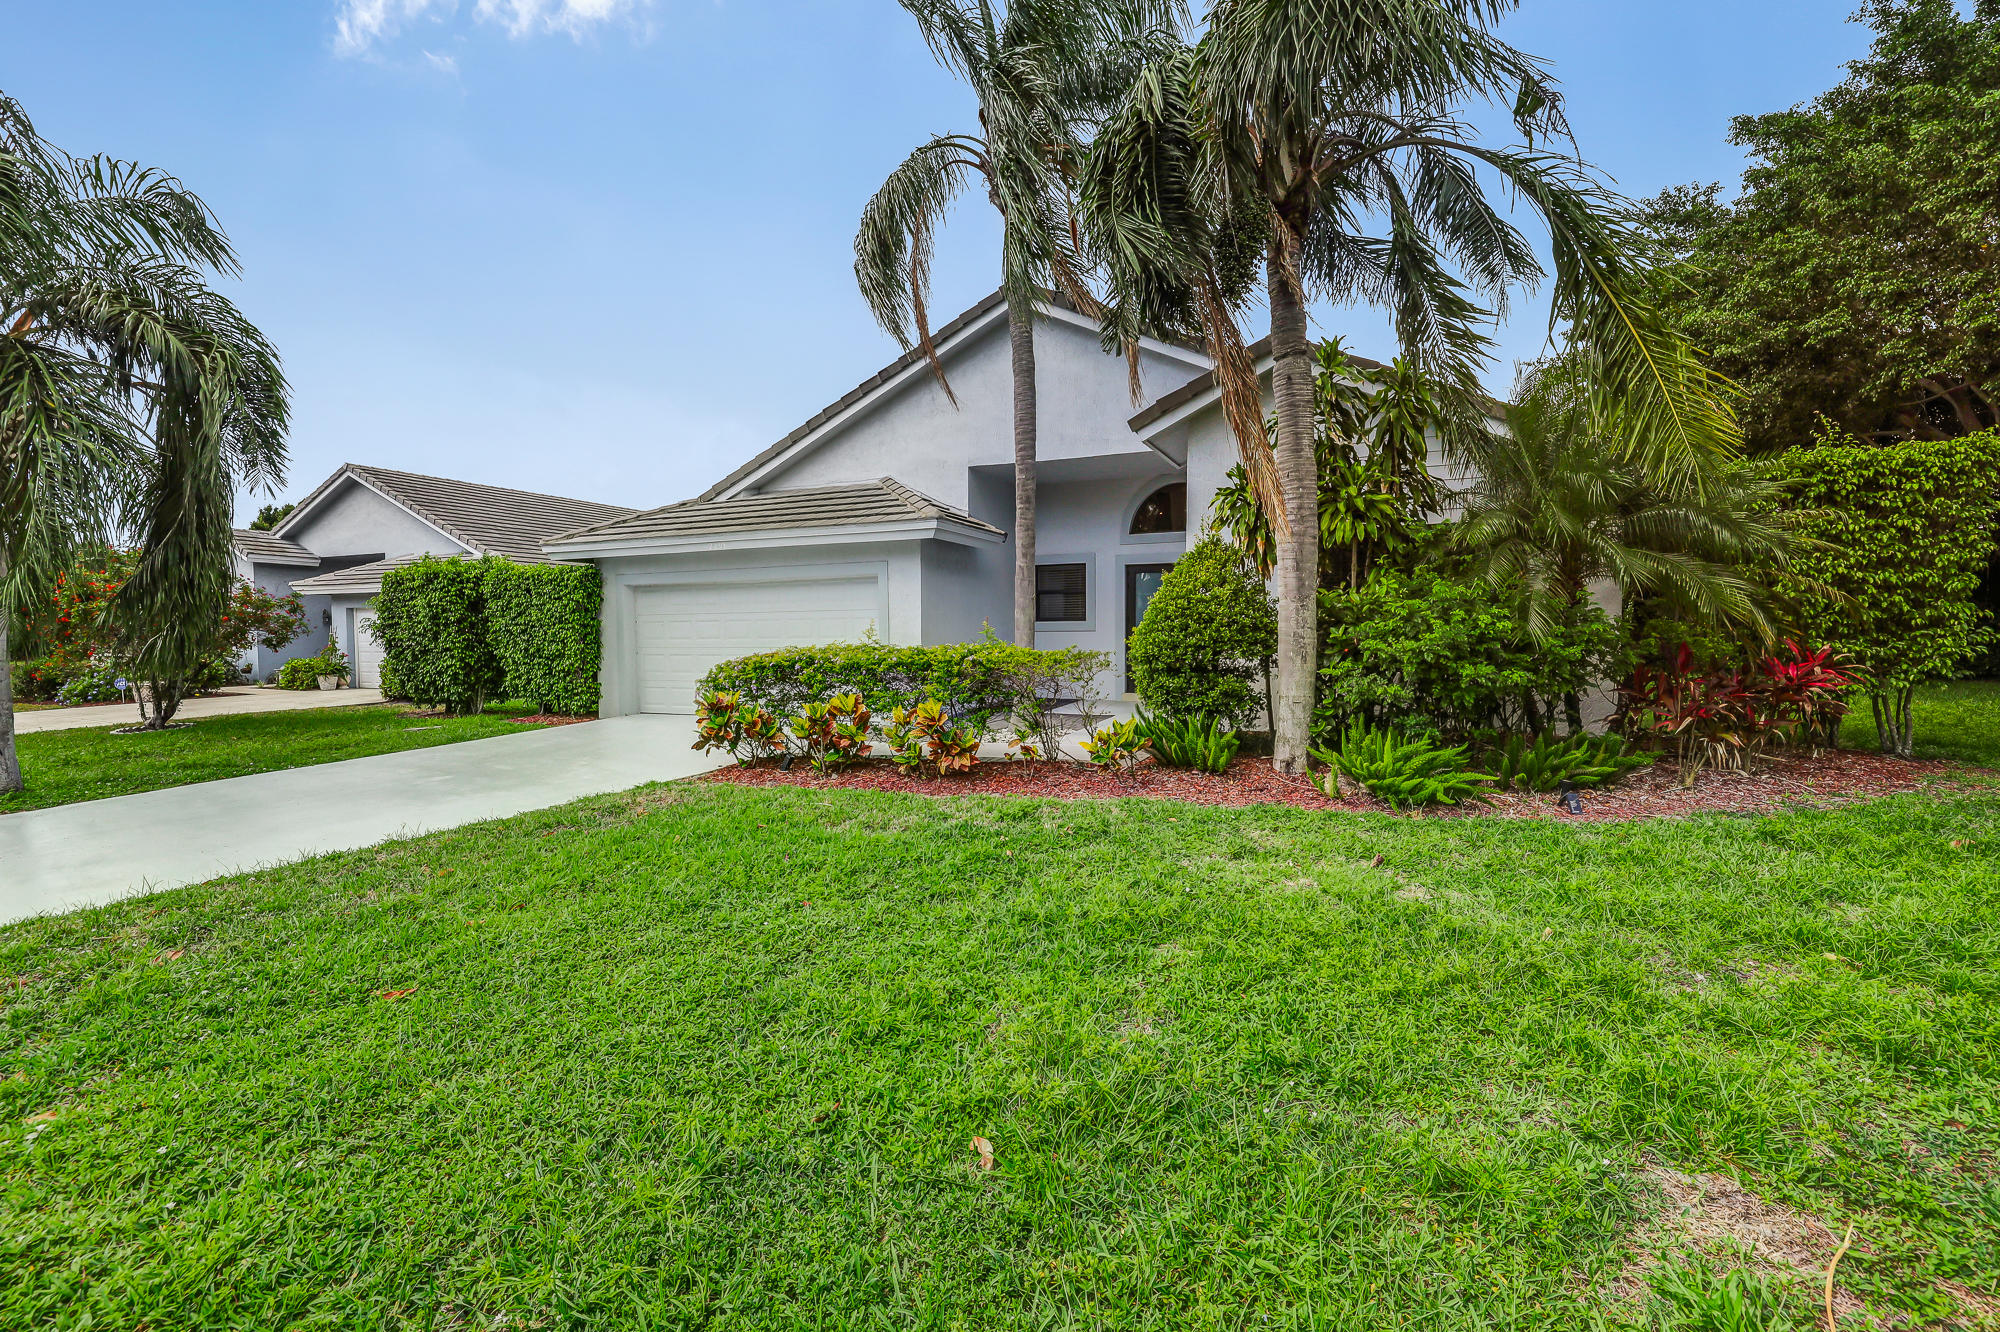 2298 NW 8th Street  For Sale 10716002, FL